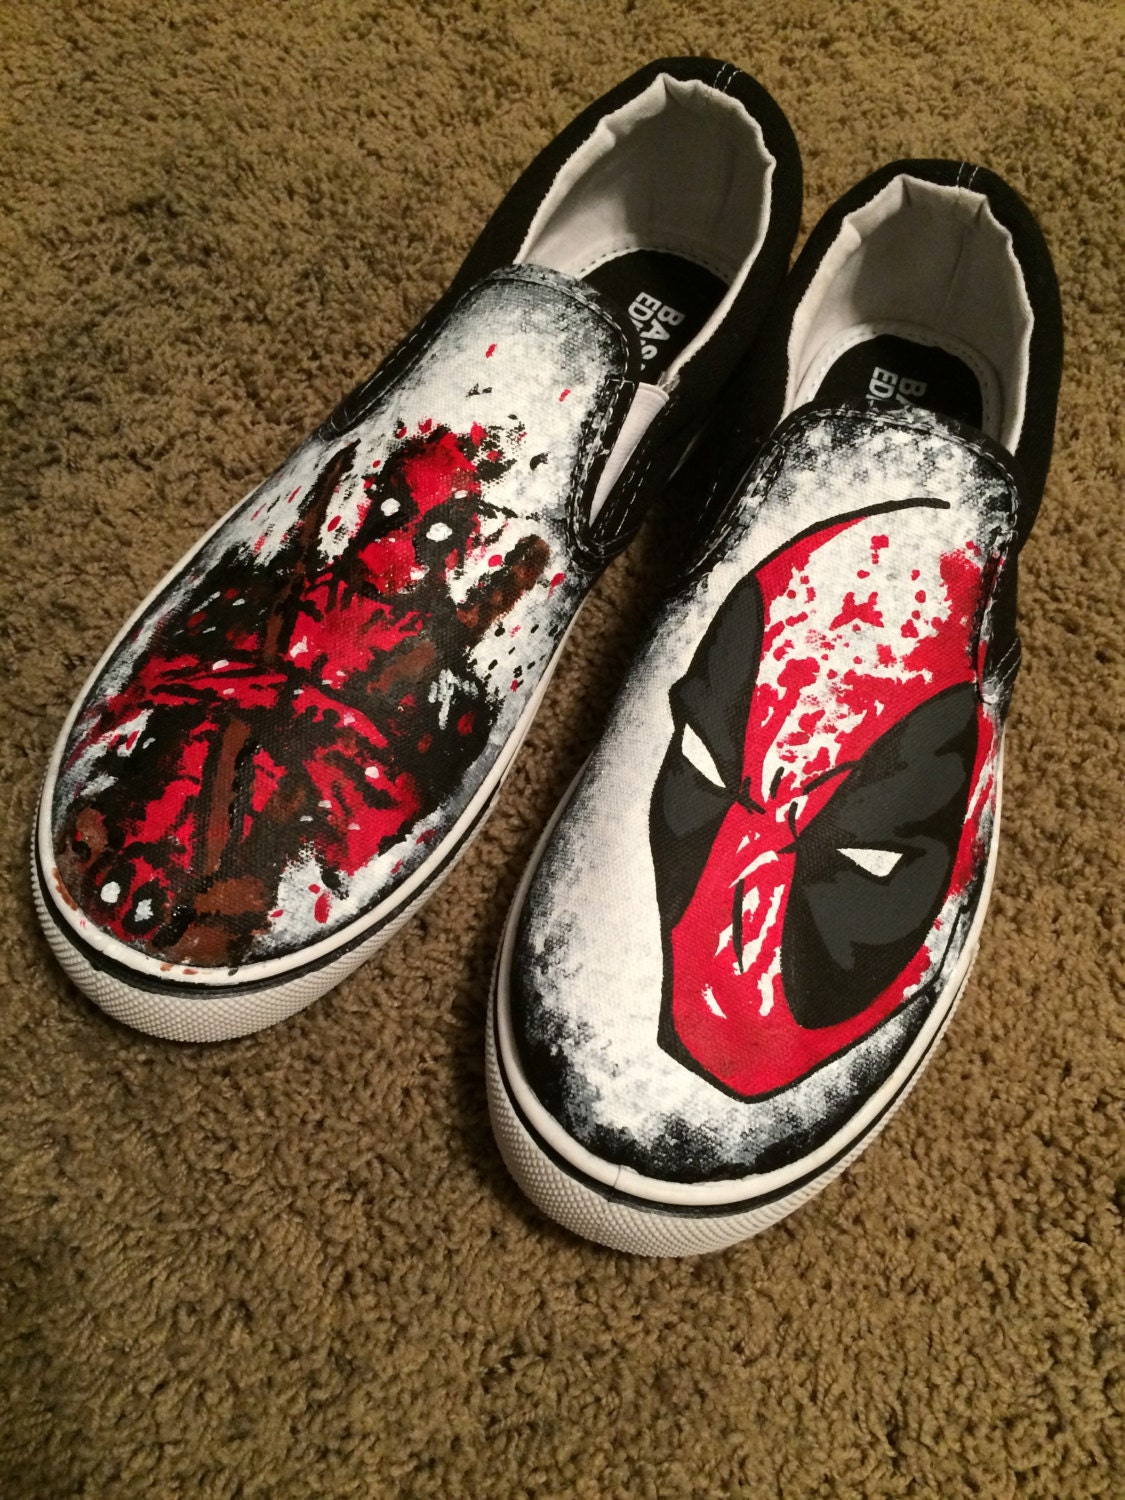 Funny Vans Custom Shoes